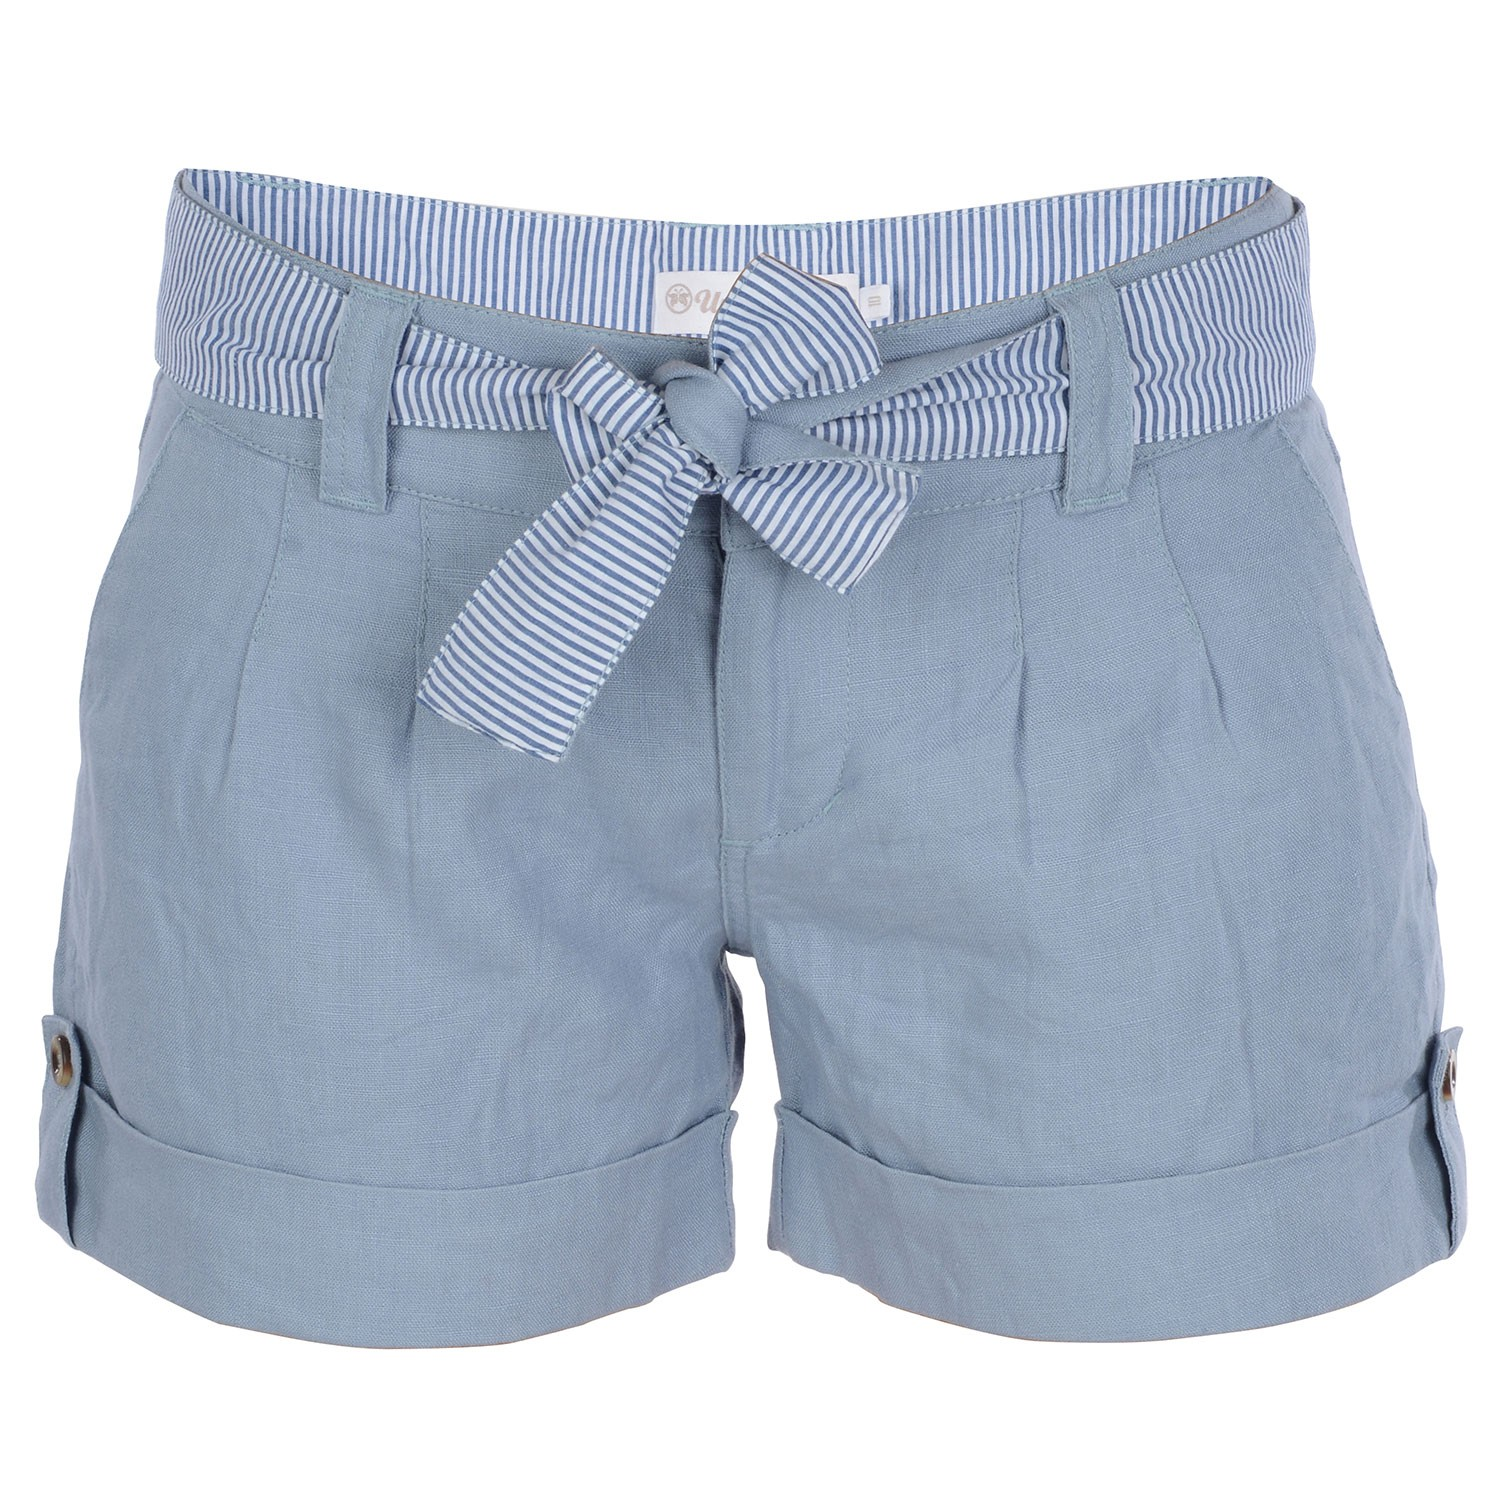 Womens Linen Grey Shorts Palm Bay- Free Delivery Over £20